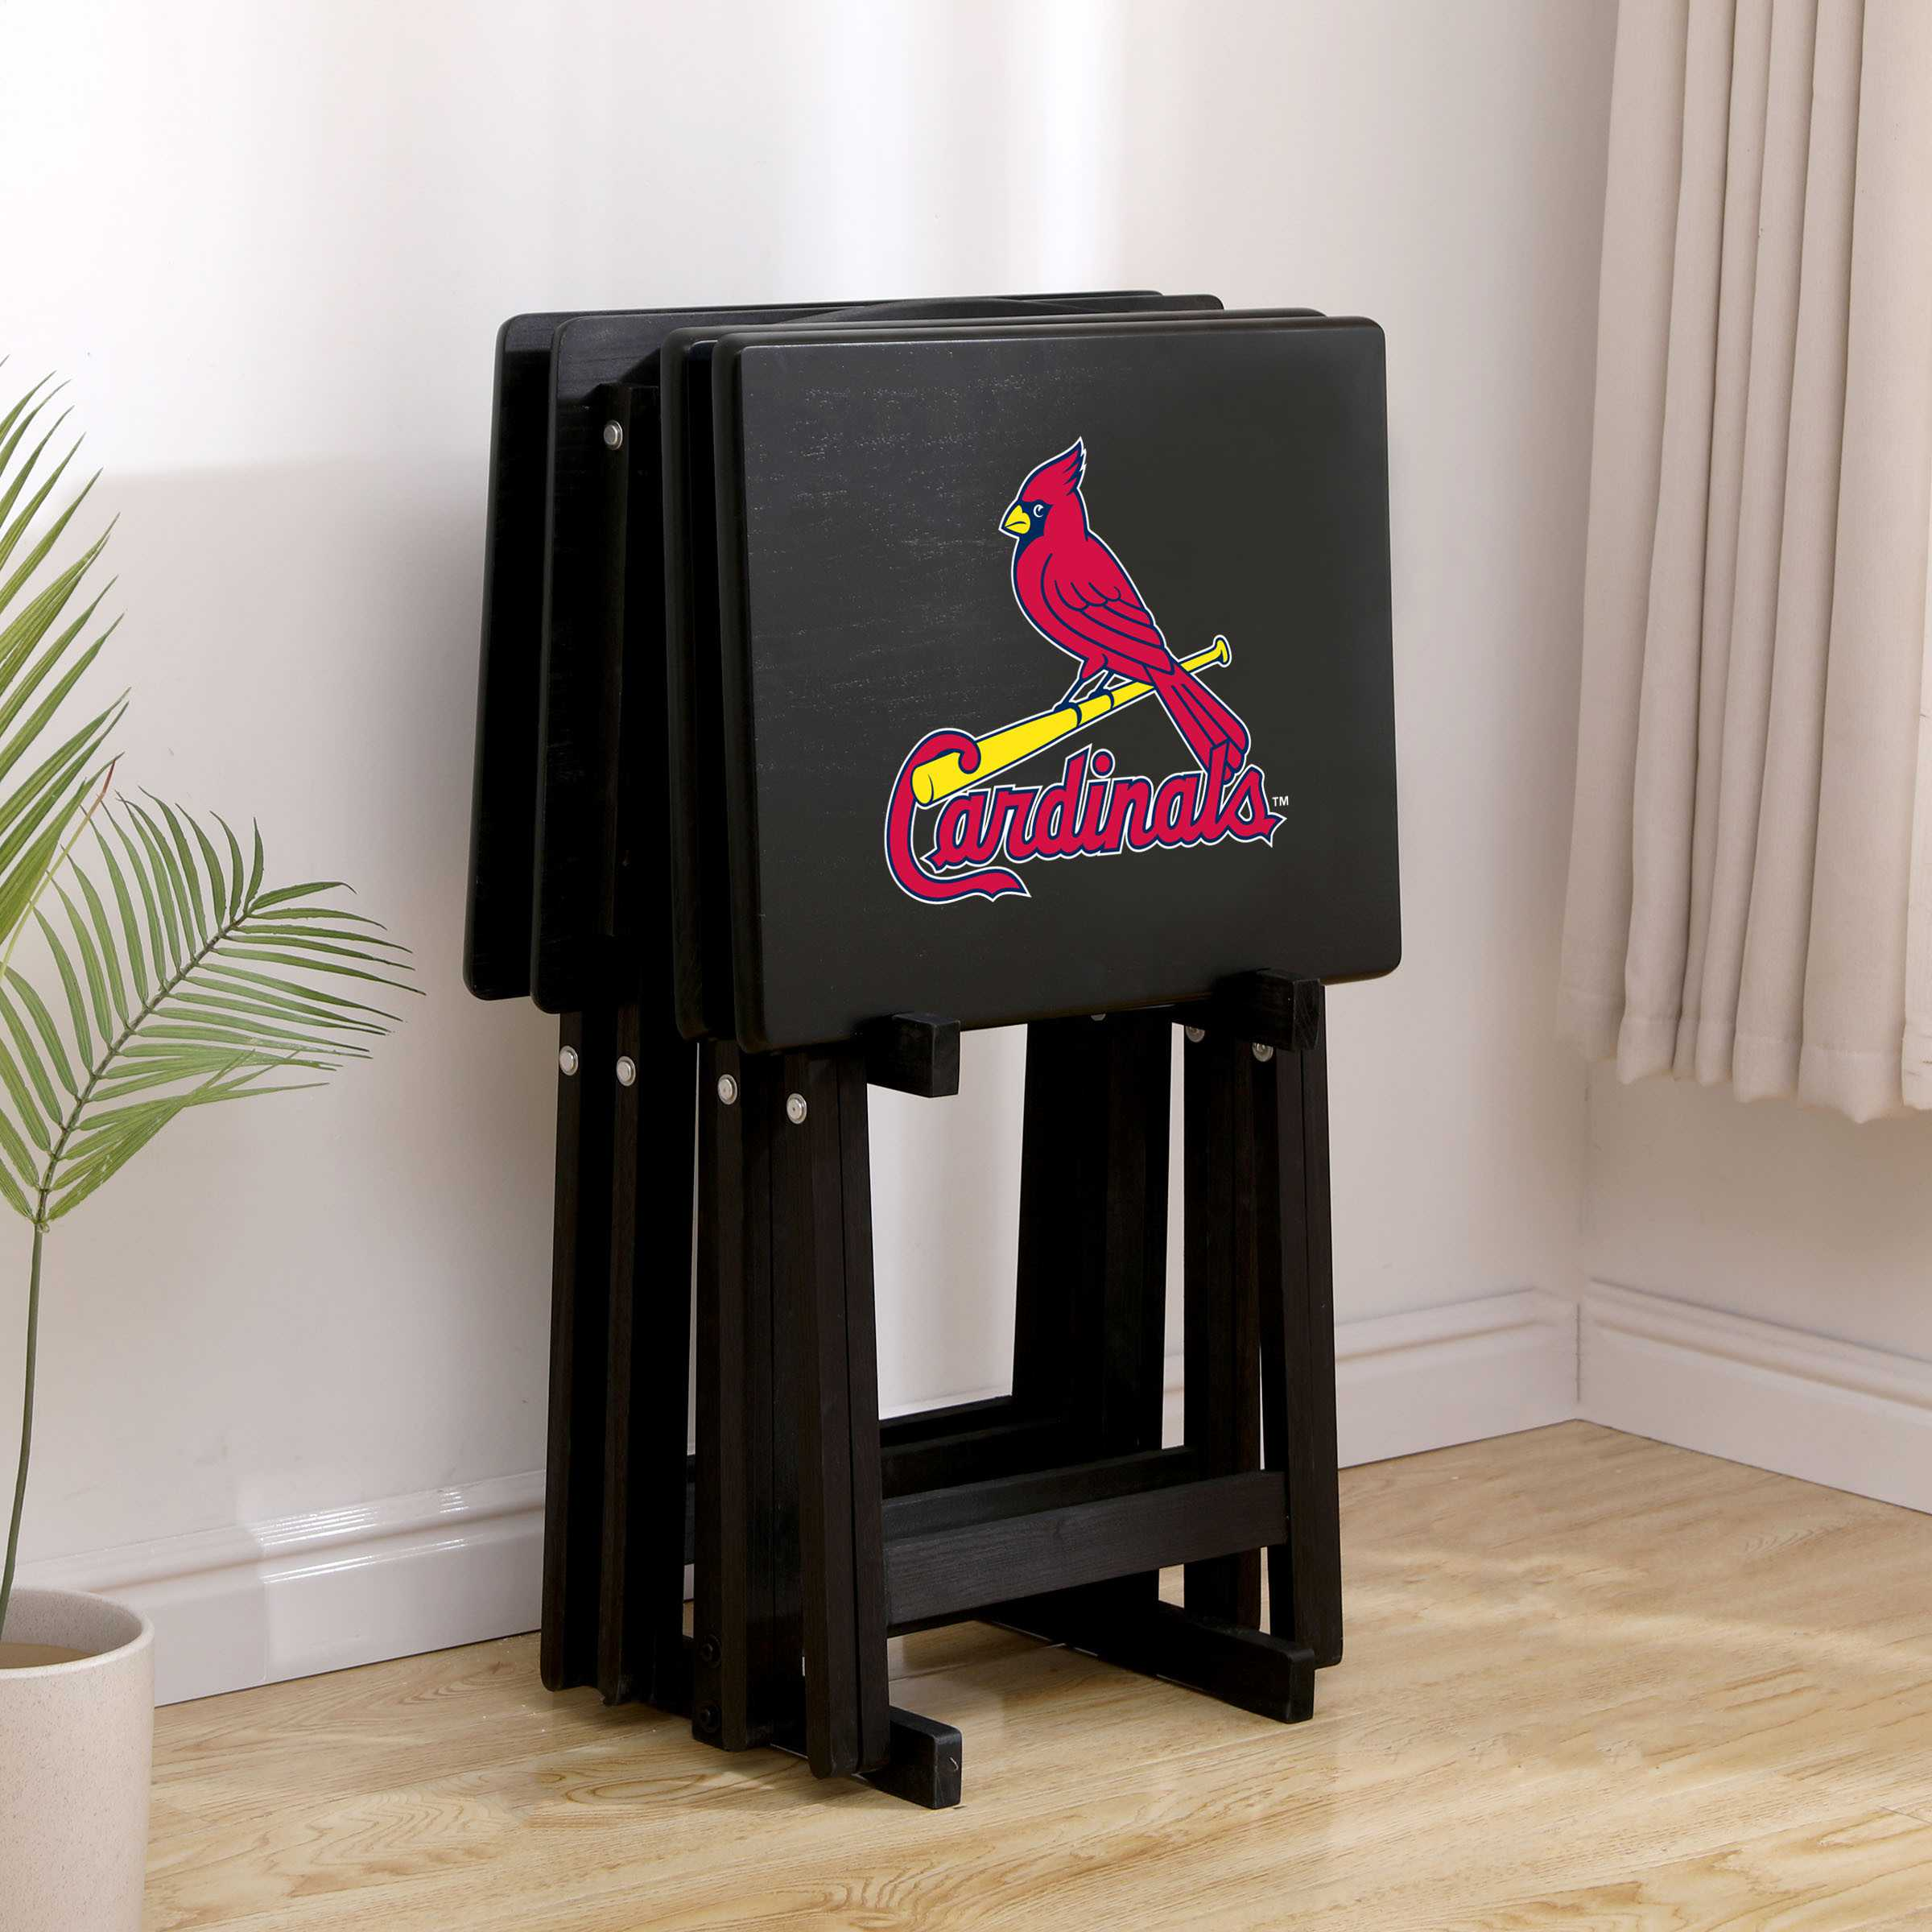 ST LOUIS CARDINALS 4 TV TRAYS WITH STAND